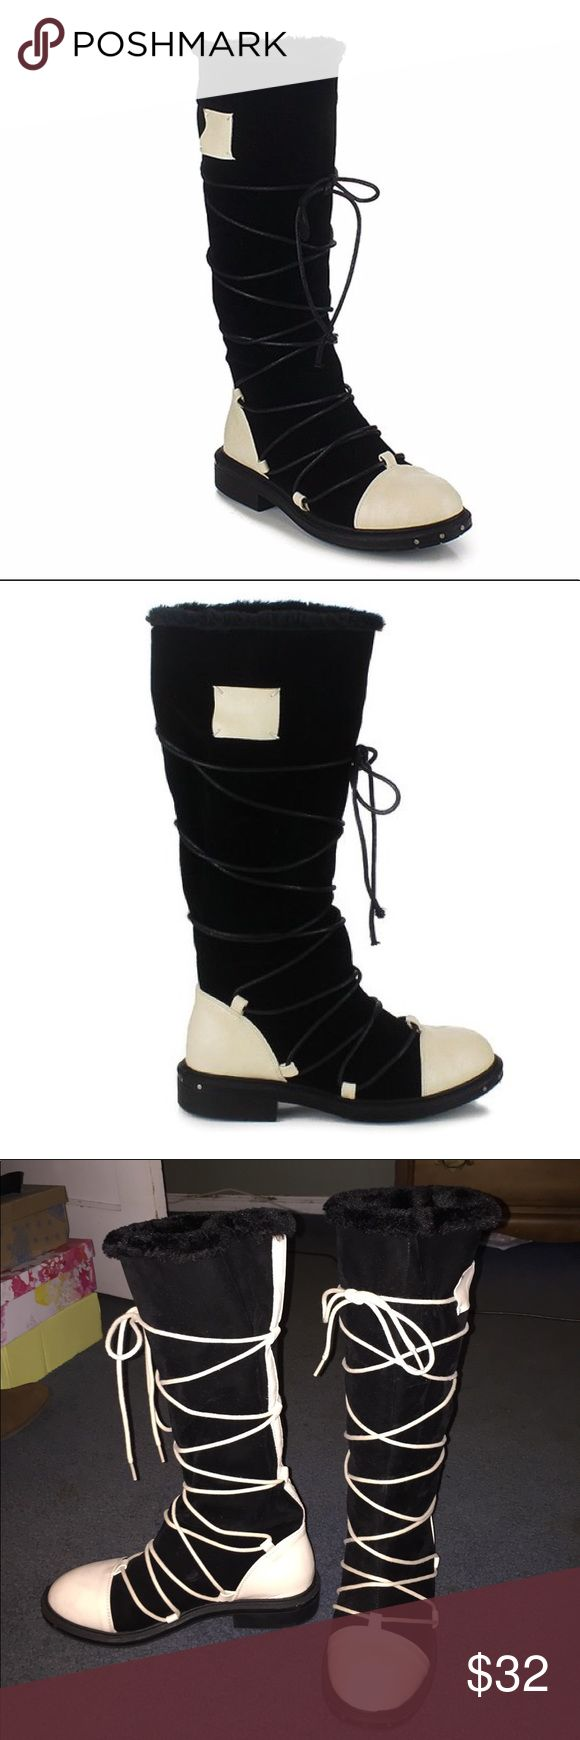 """NWB unique pair of cold weather boots sz 8 NWB never worn unique pair of cold weather boots.  Shown here with cream/ivory laces, but they also look really cool with black as well.  You can use whatever color you're in the mood for!  1st pics have the black.  1"""" heel, 14"""" shaft, 15"""" circumference, faux fur lining. Man made upper, man made sole. Reneeze Shoes Winter & Rain Boots"""